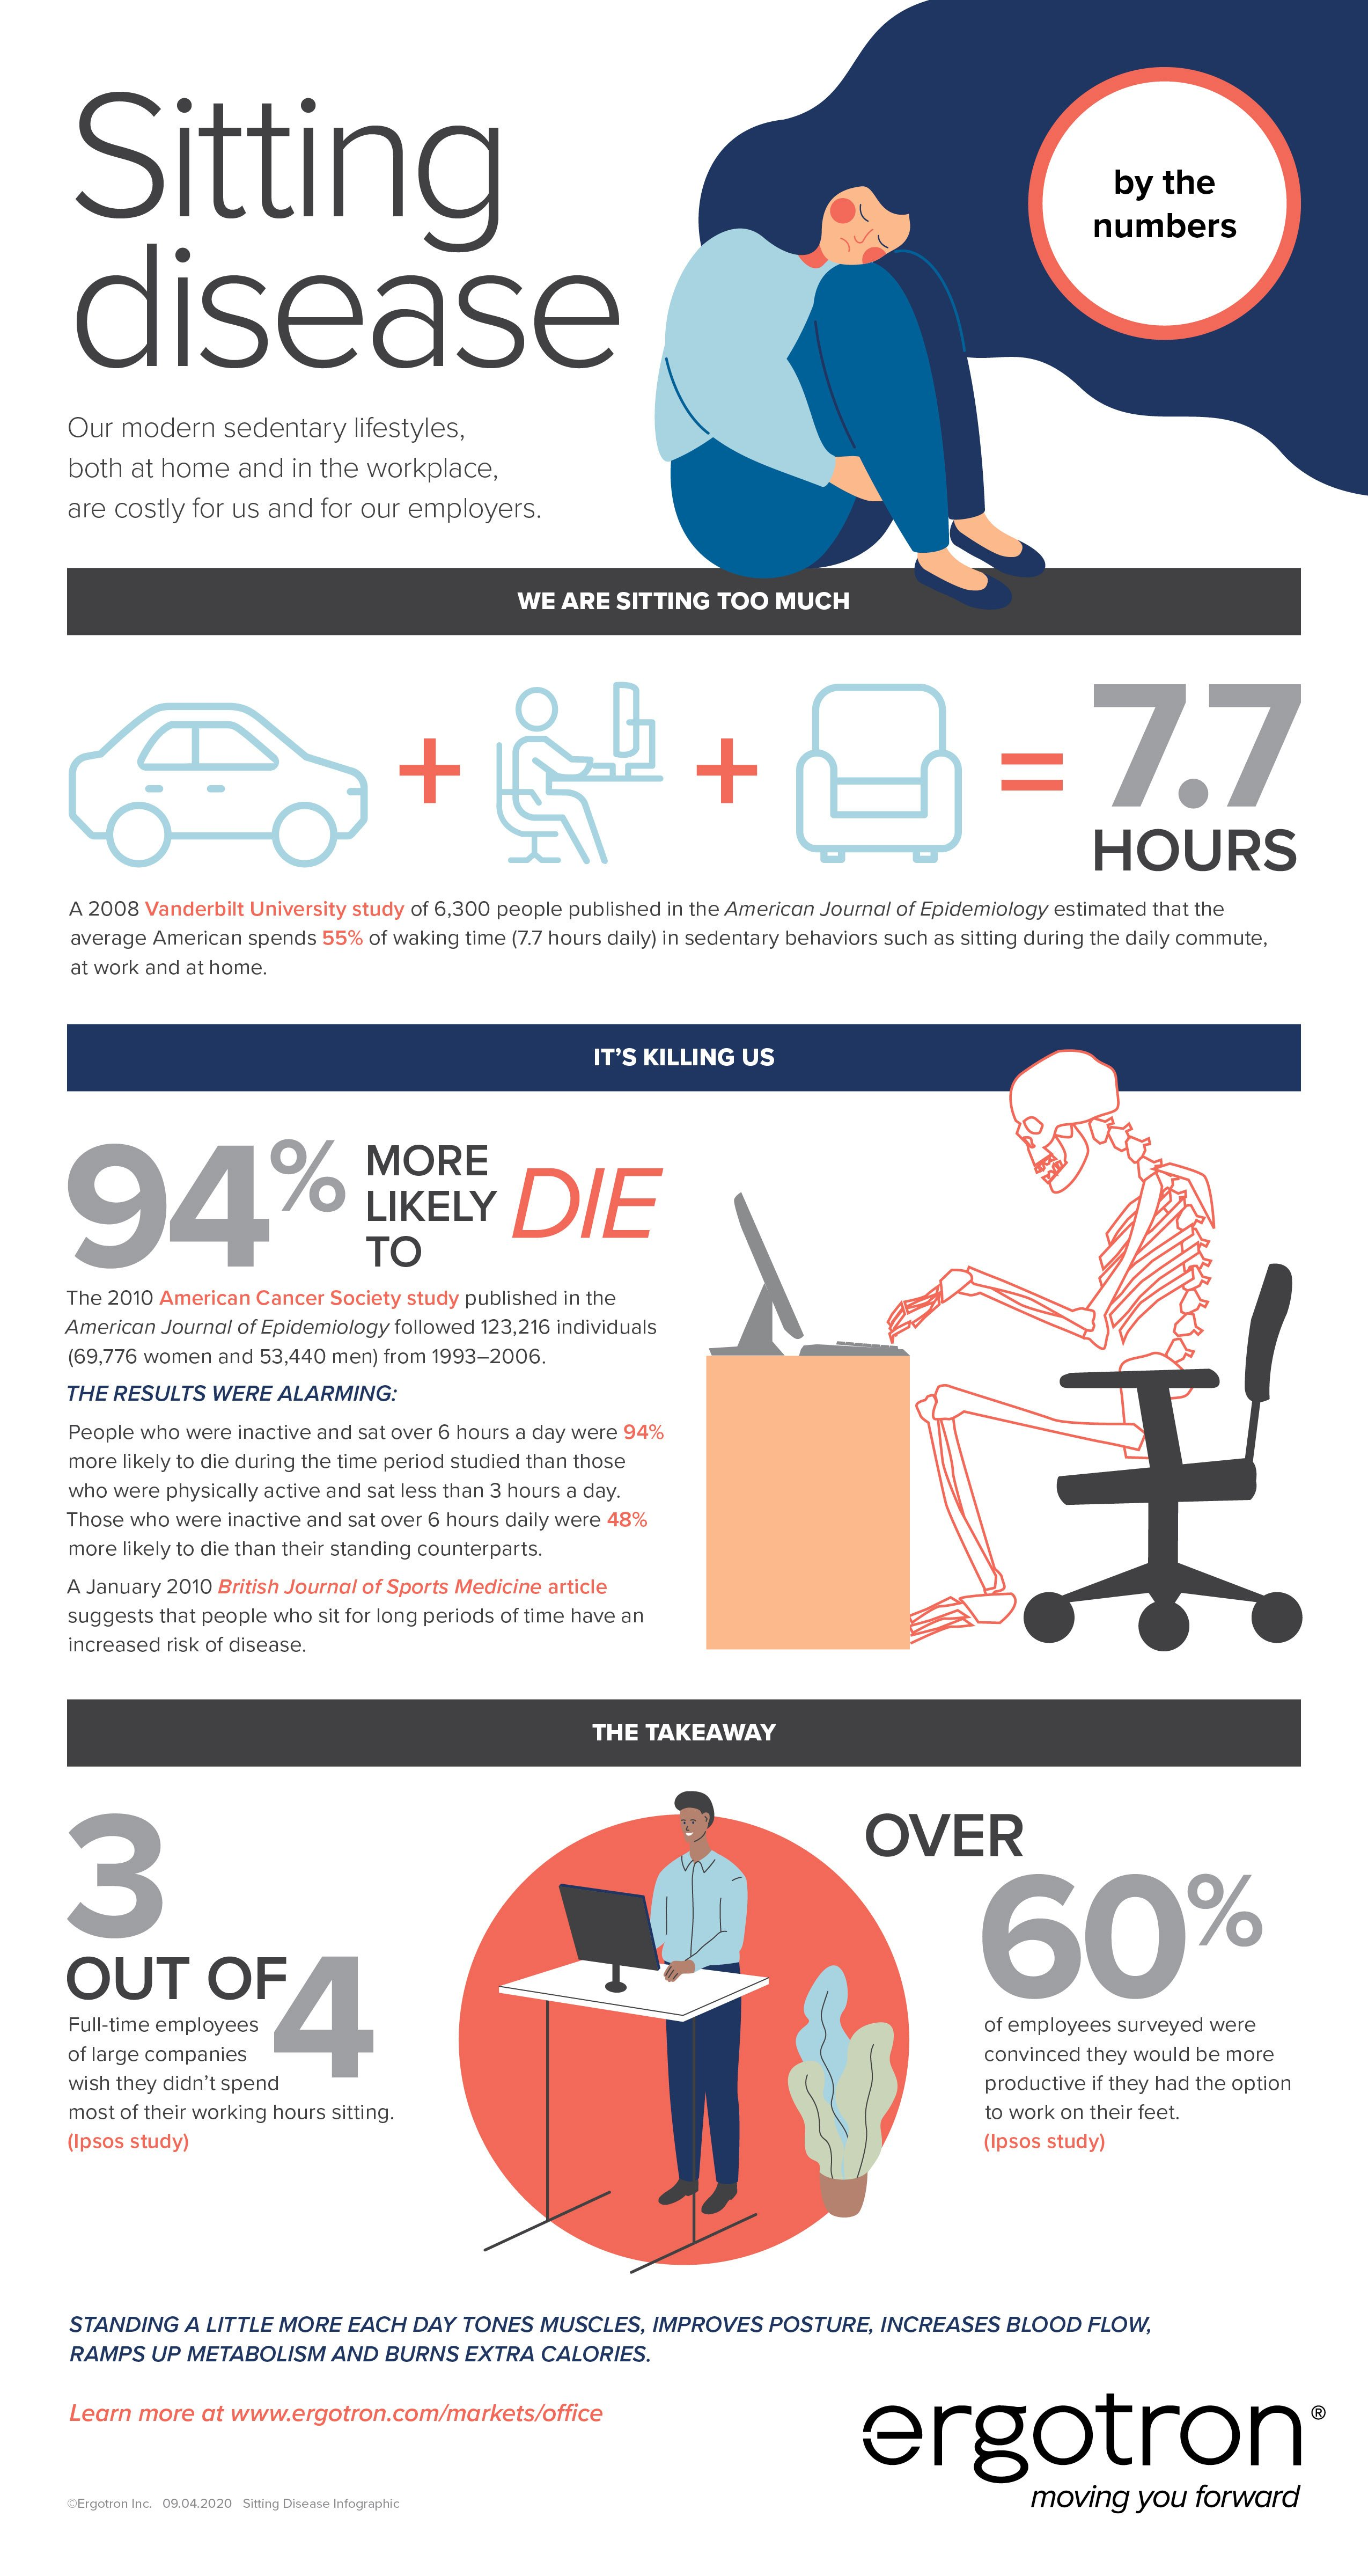 Sitting Disease by the Numbers infographic